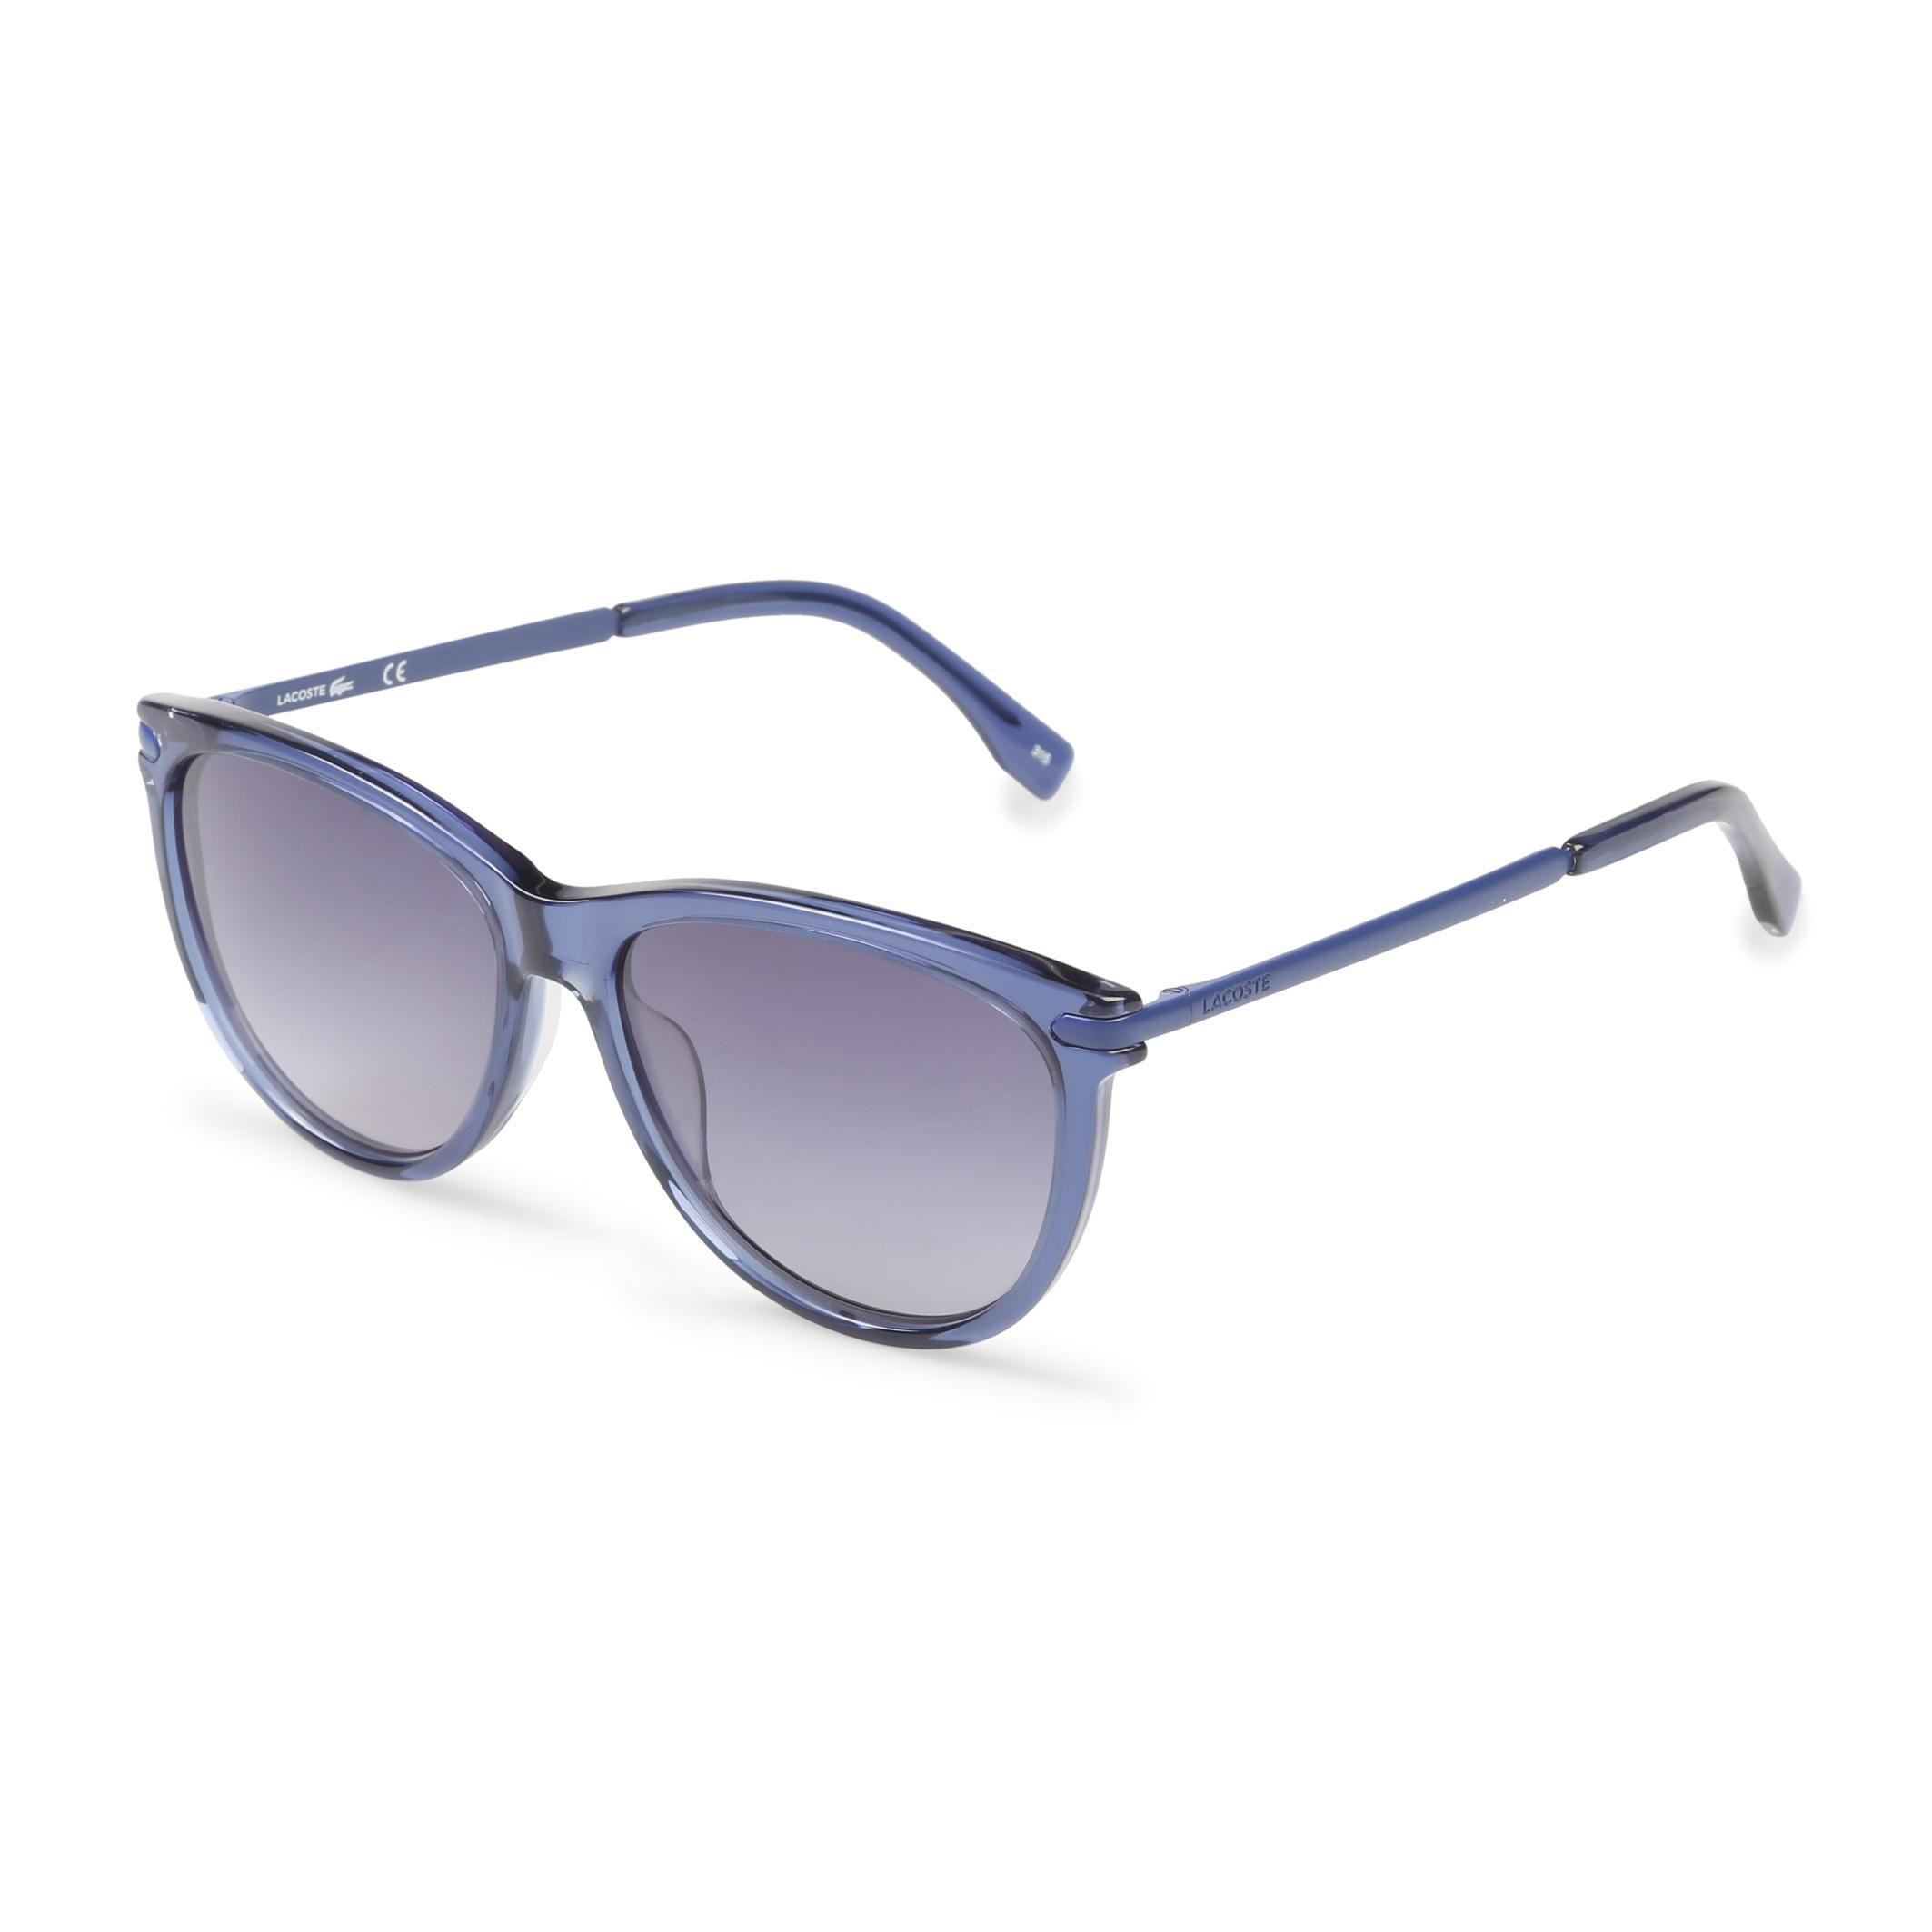 6caf44f512d1 Lacoste Blue Uv